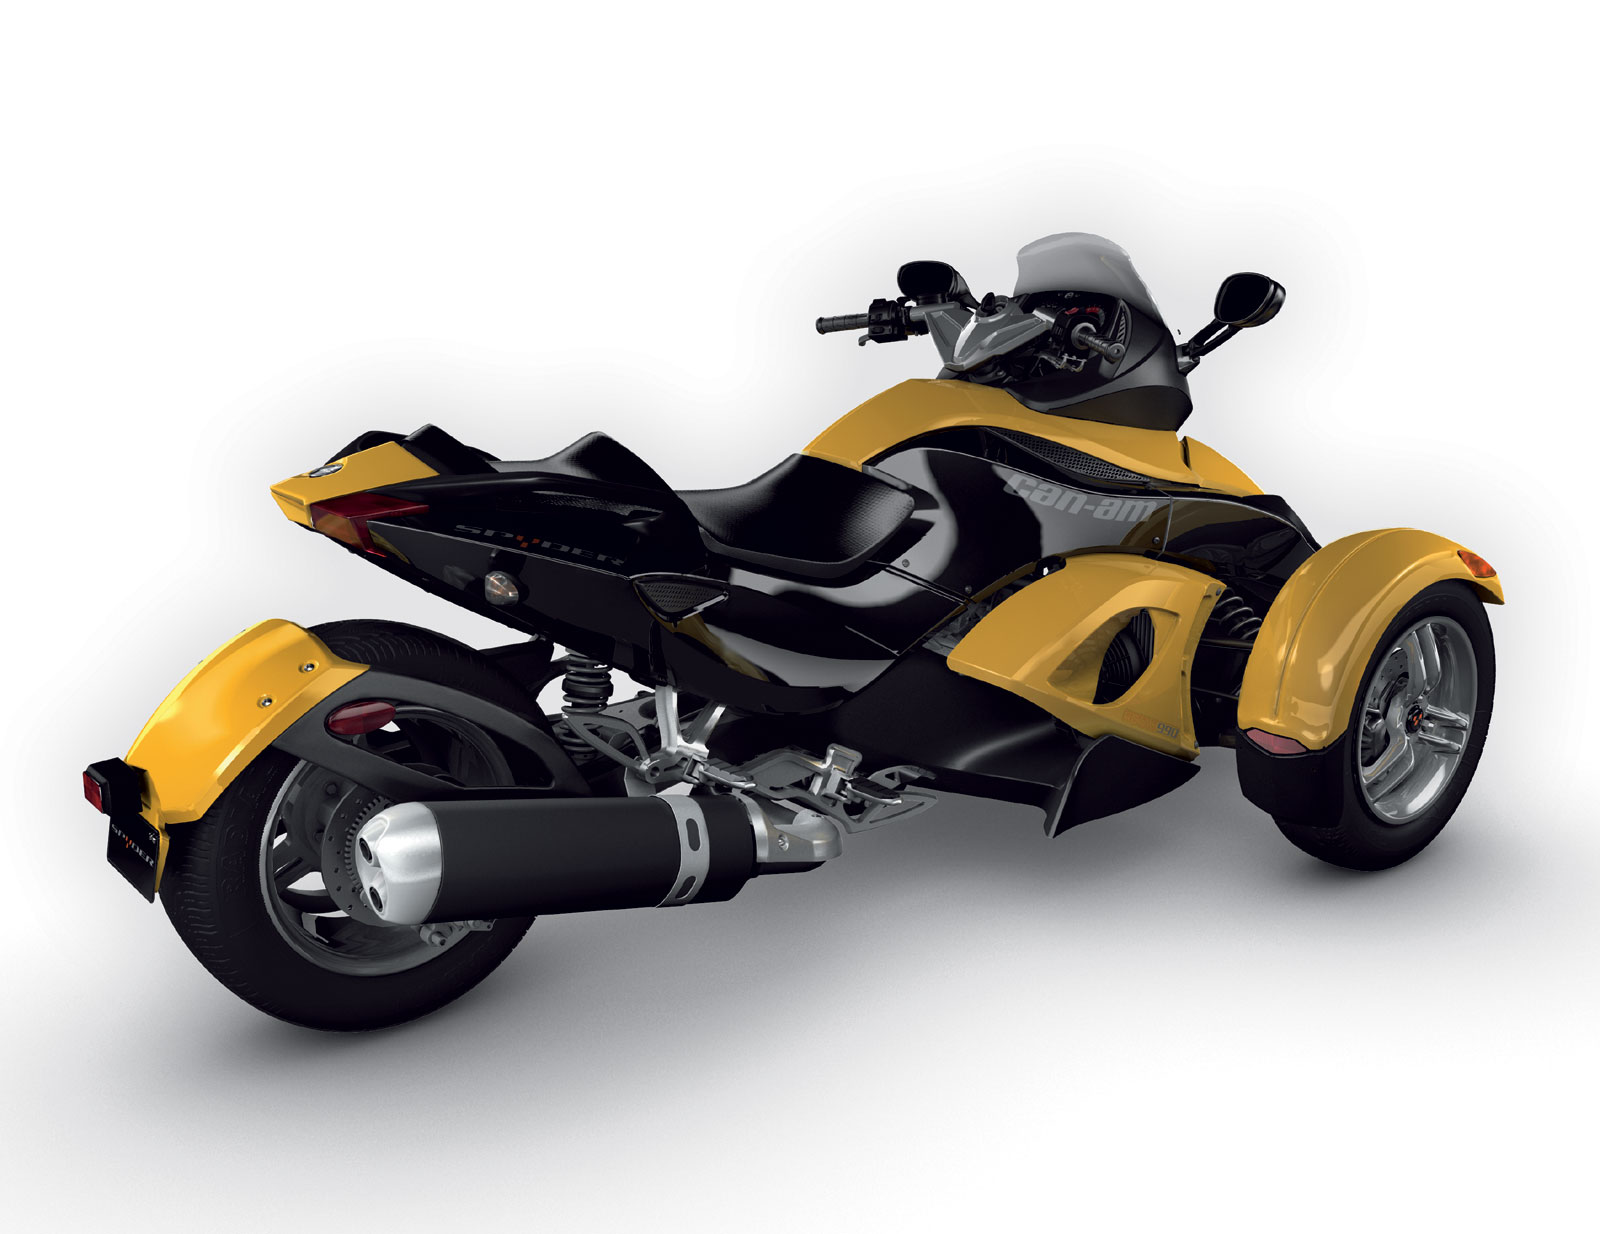 2013 Can-Am Spyder RS-S Review - Total Motorcycle